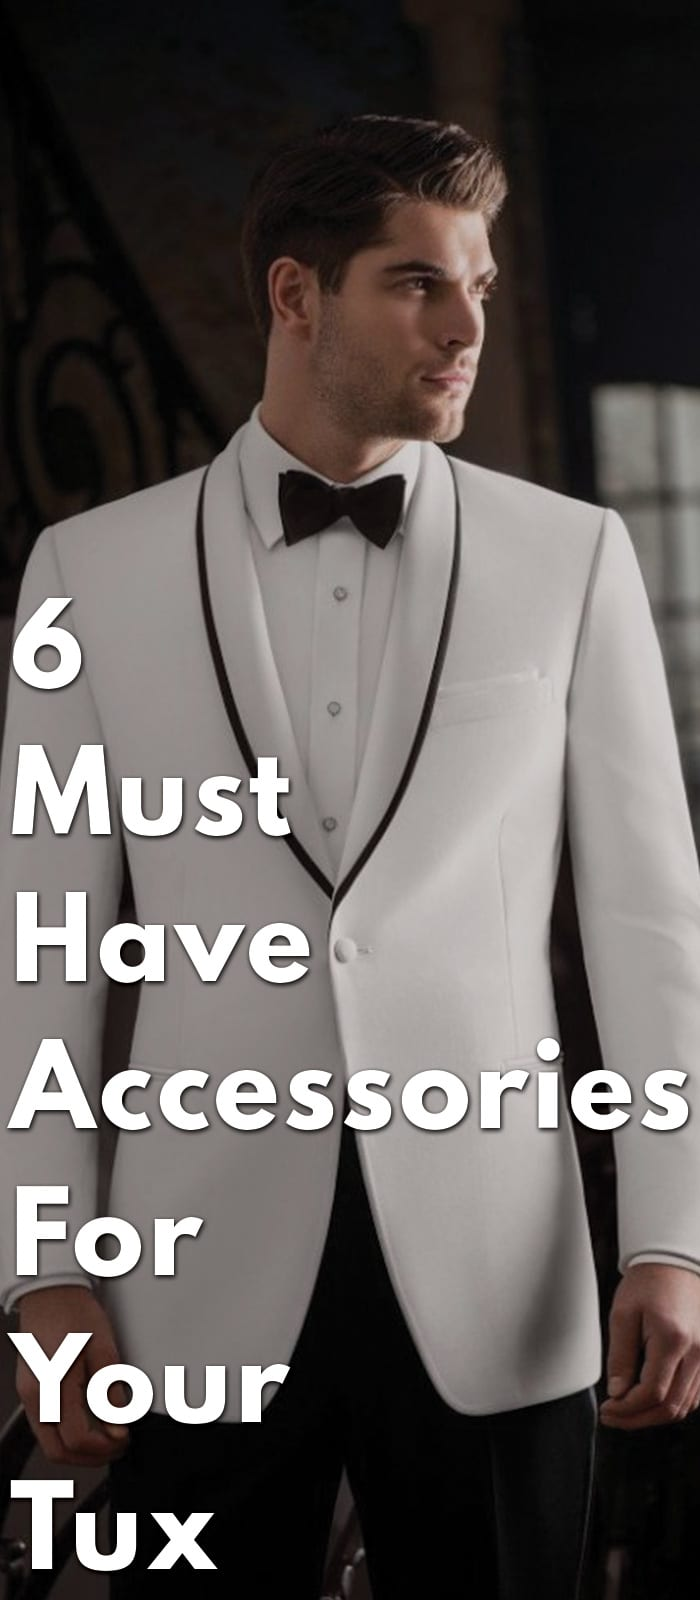 6-Must-Have-Accessories-For-Your-Tux